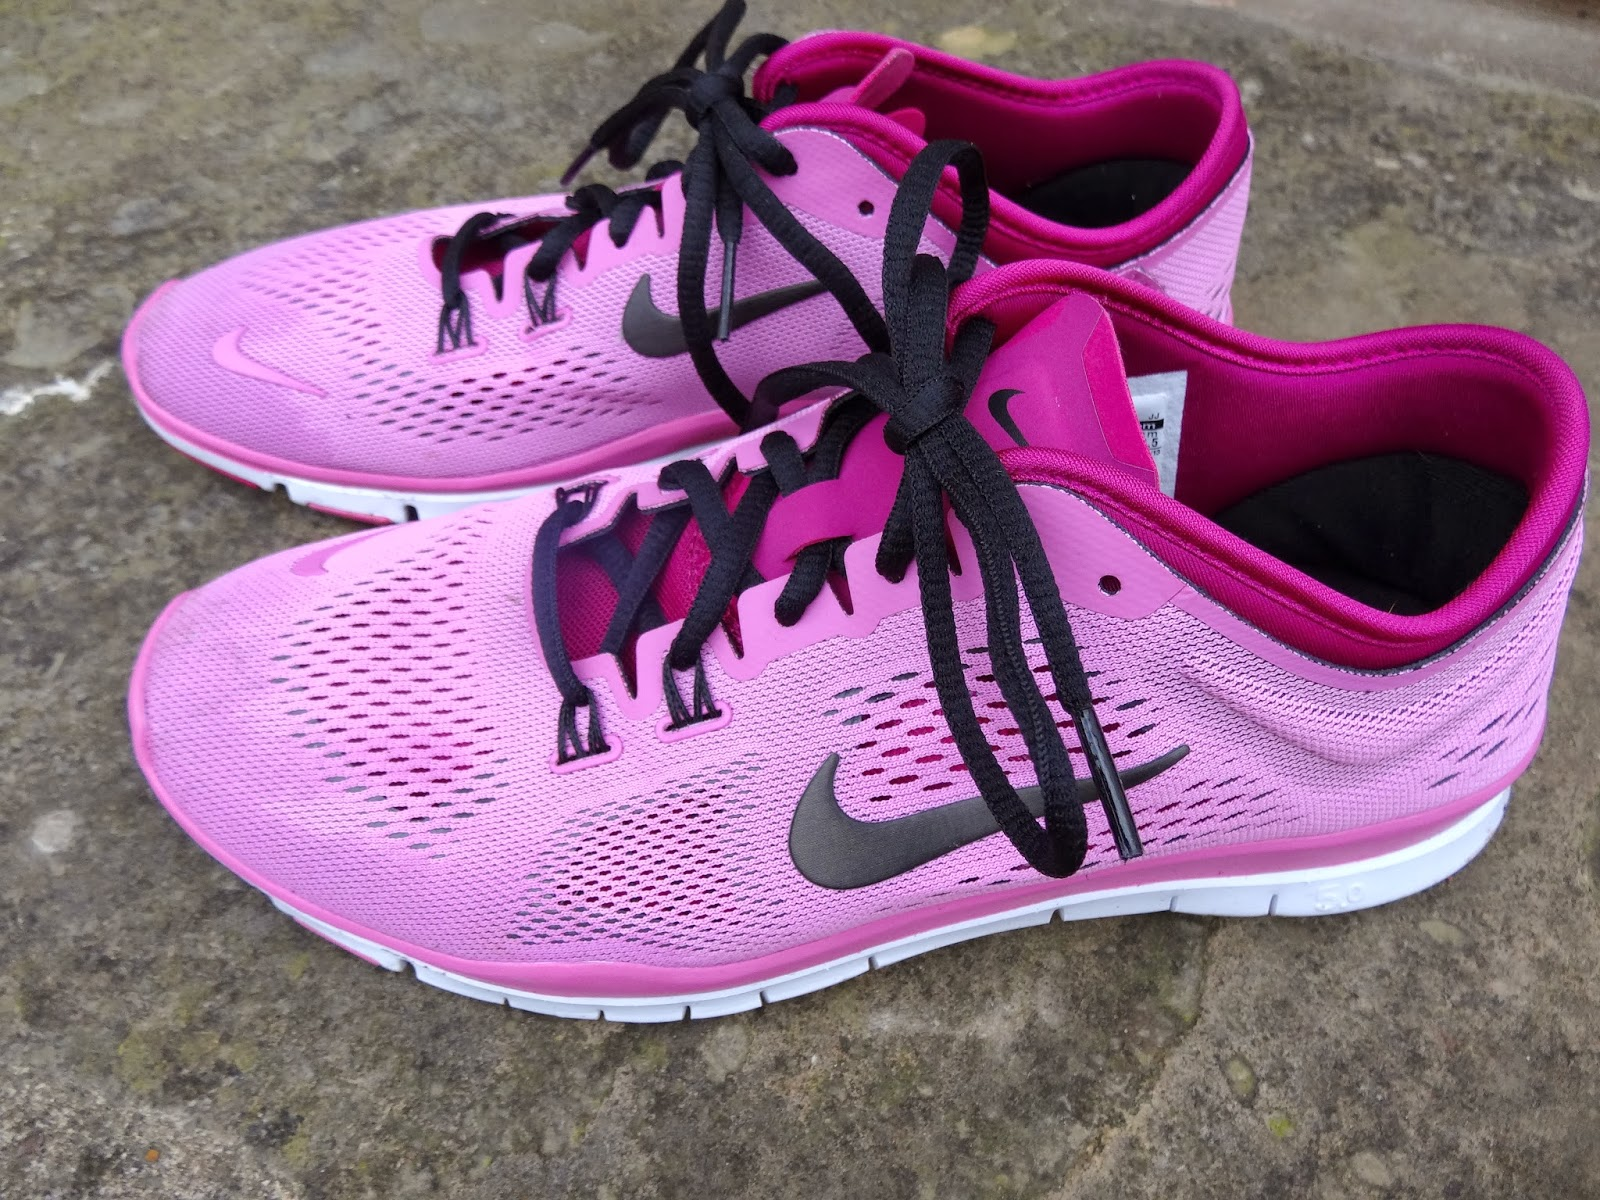 ... without laces. while you; new in the nike free runs